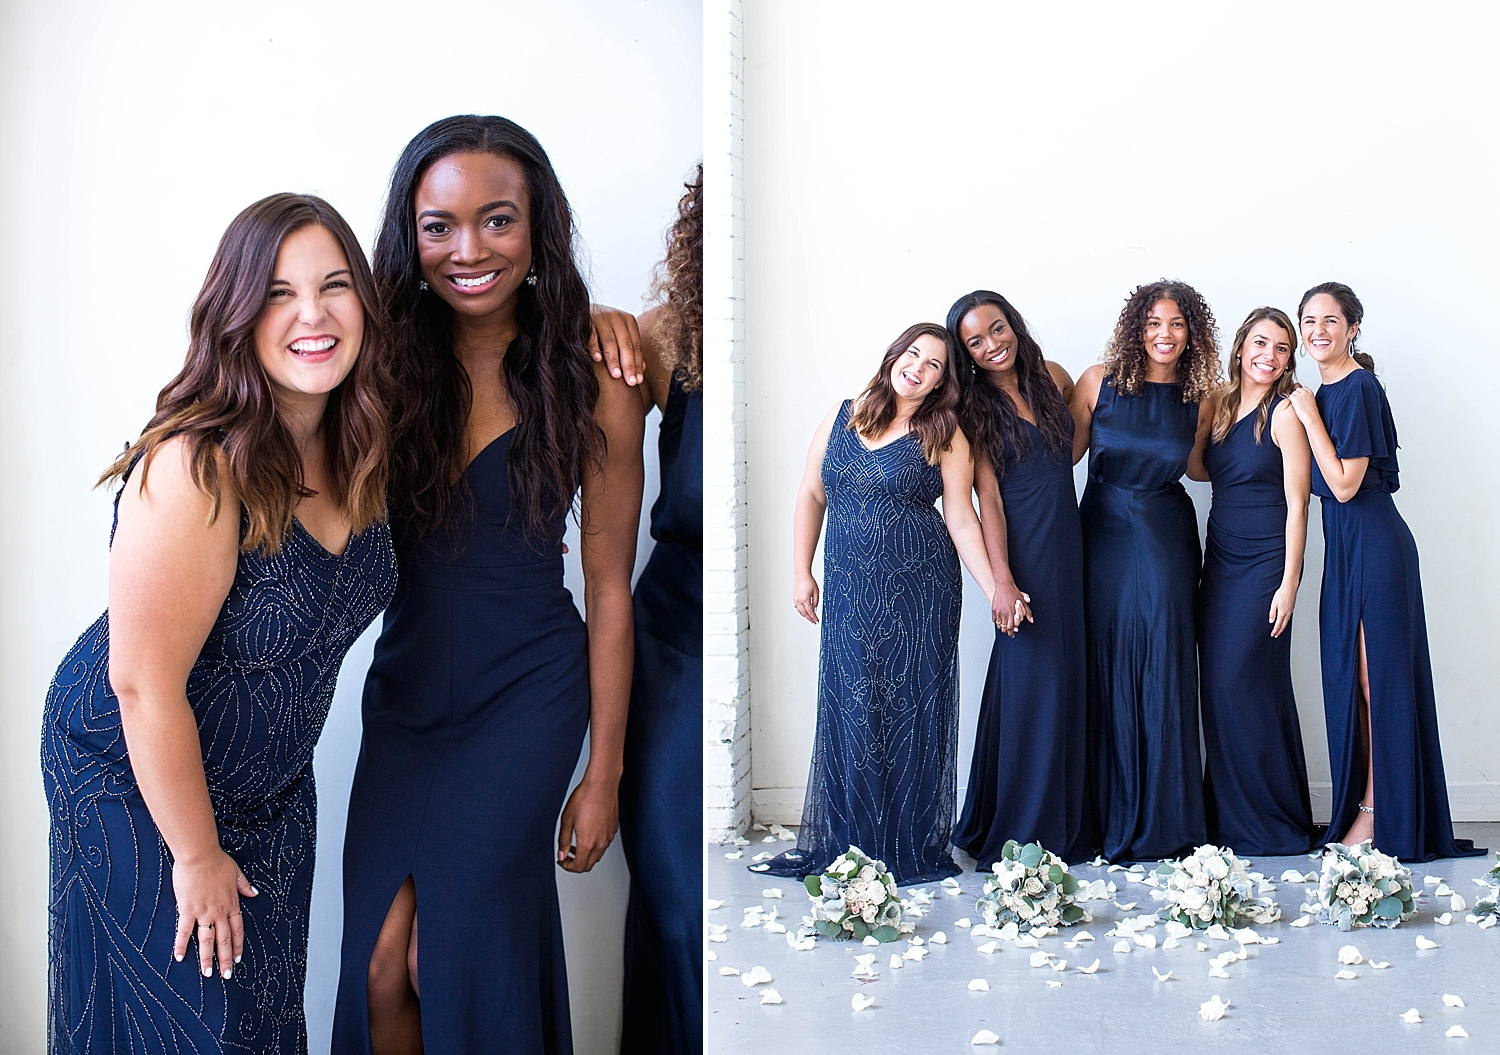 BHLDN Bridesmaids Dresses Campaign Philadelphia New Jersey Wedding Fashion Photography by Kelee Bovelle_0019.jpg